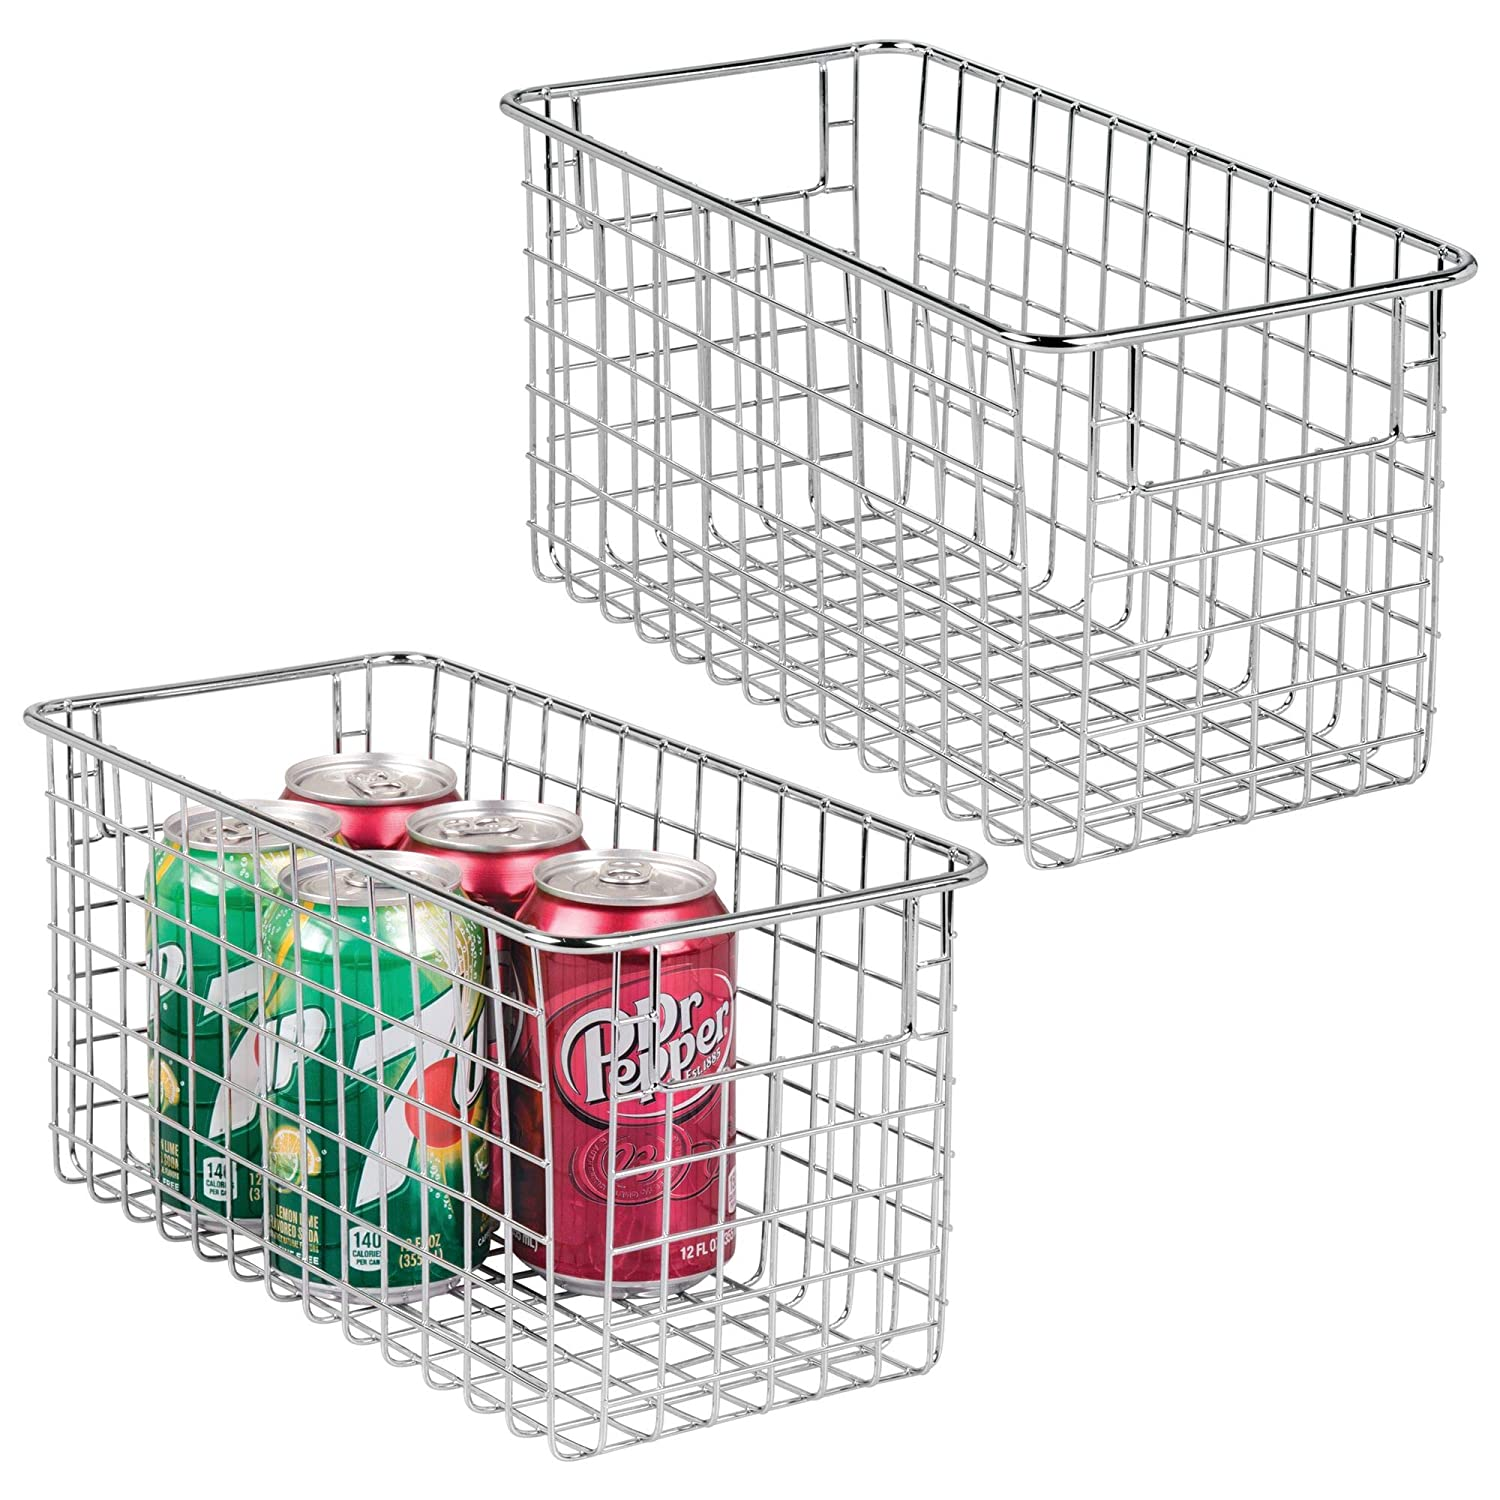 "mDesign Farmhouse Decor Metal Wire Food Storage Organizer, Bin Basket with Handles for Kitchen Cabinets, Pantry, Bathroom, Laundry Room, Closets, Garage - 12"" x 6"" x 6"" - 2 Pack - Chrome"